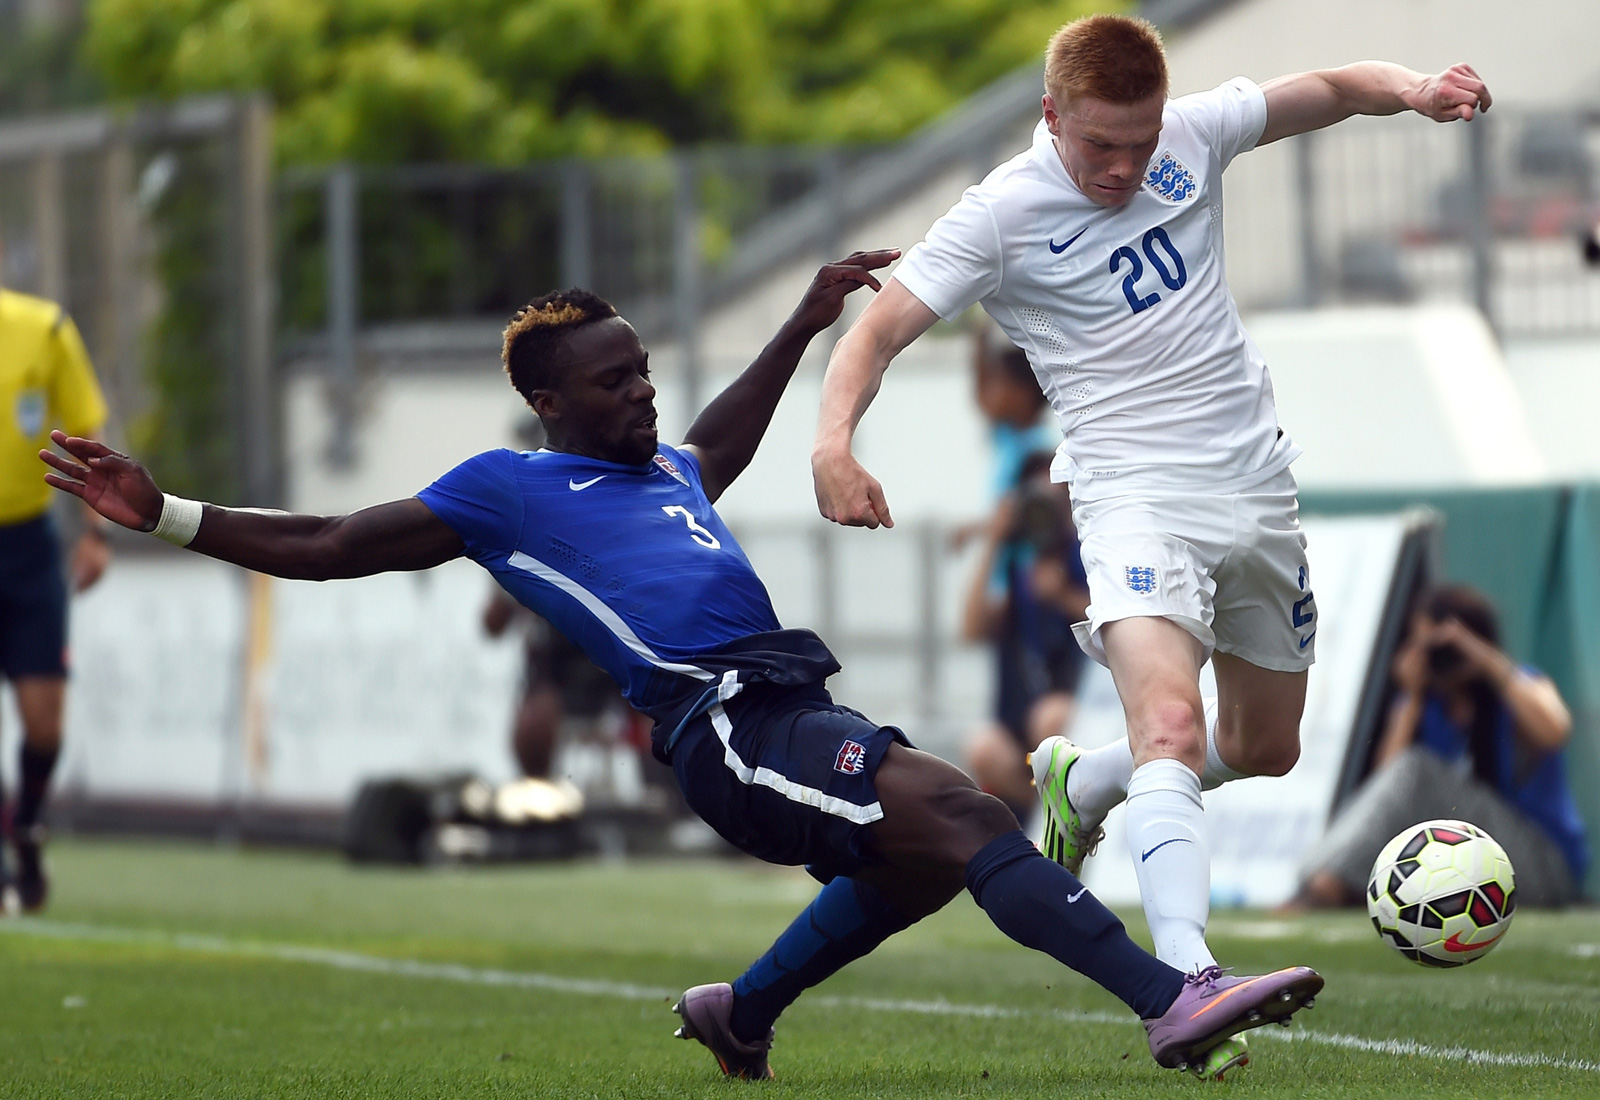 USA defender Boyd Okwuonu makes a tackle on England's Duncan Watmore in the Toulon Tournament third-place game. The U.S. U-23s won 2-1, sealing their best finish in the tournament.